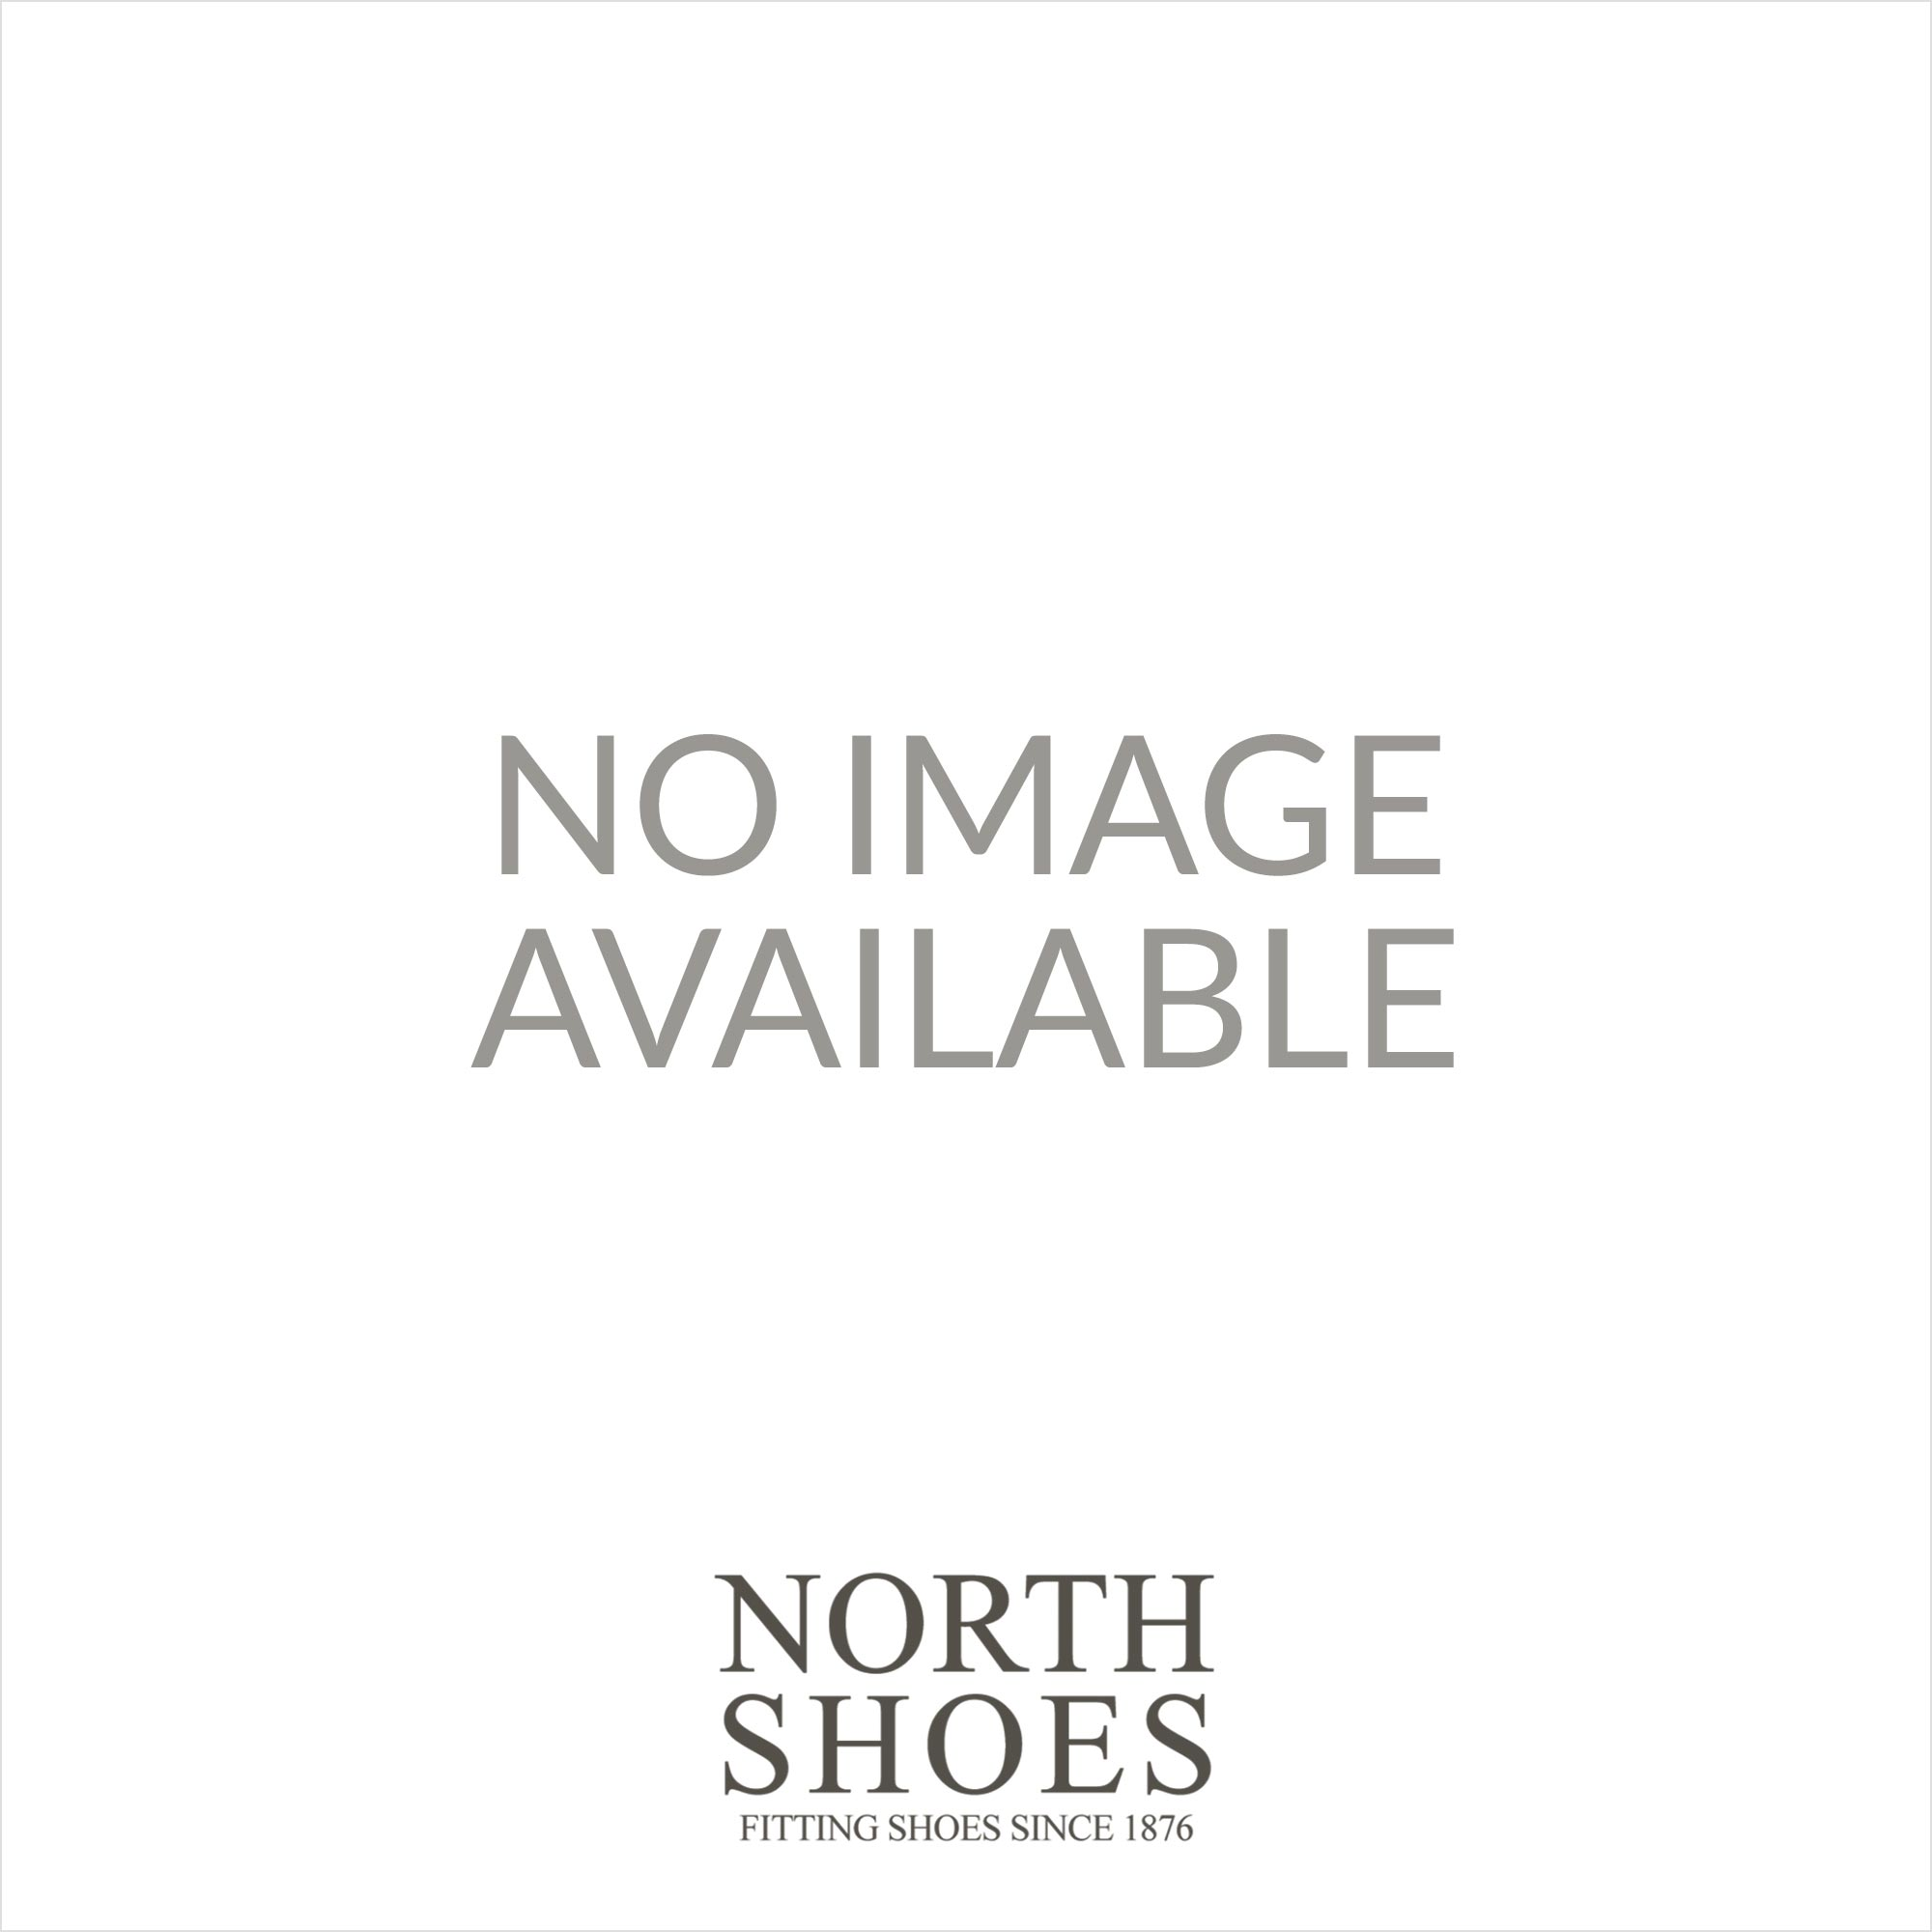 38bf1364b605 Fitflop slinky rokkit red nubuck leather womens toe post sandal fitflop  from north shoes jpg 1000x1000